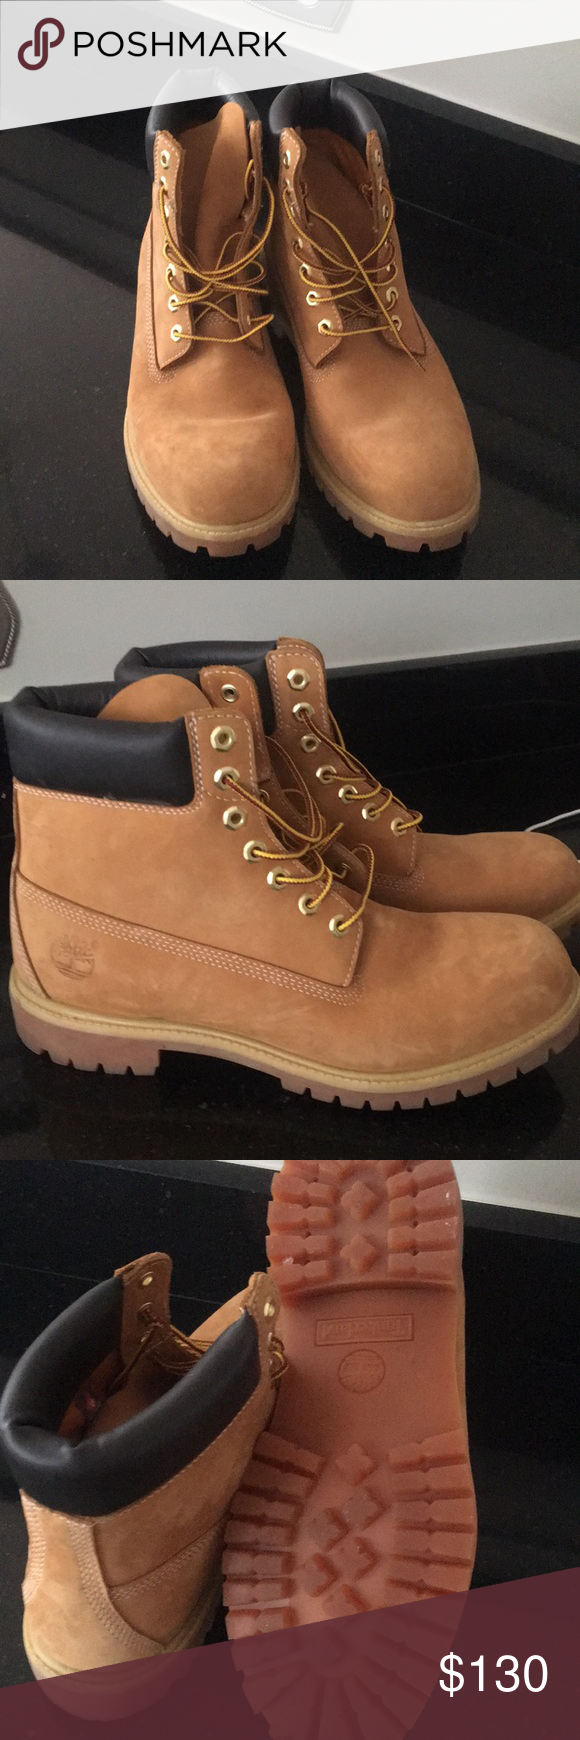 Boots Timberland ShoesMen's ShoesMen's ColorTan Timberland wNnm0v8